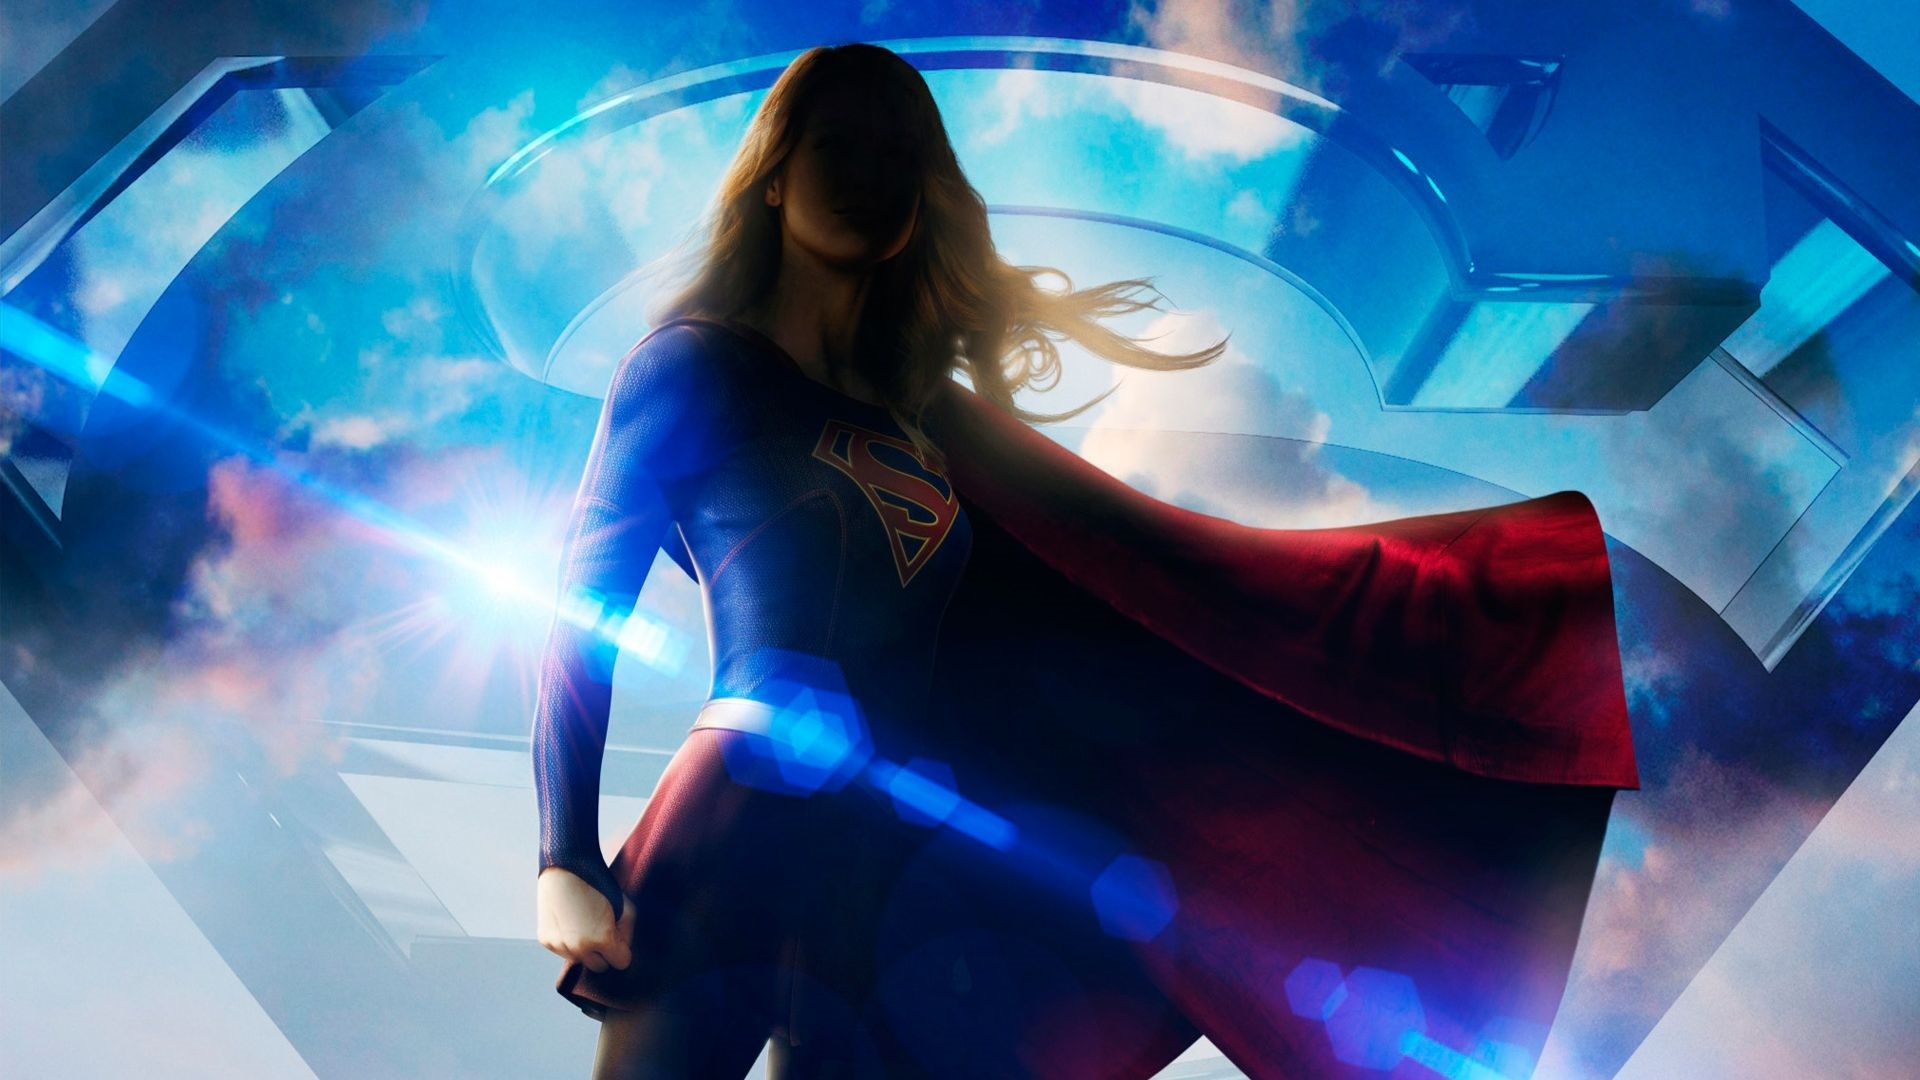 Supergirl free picture